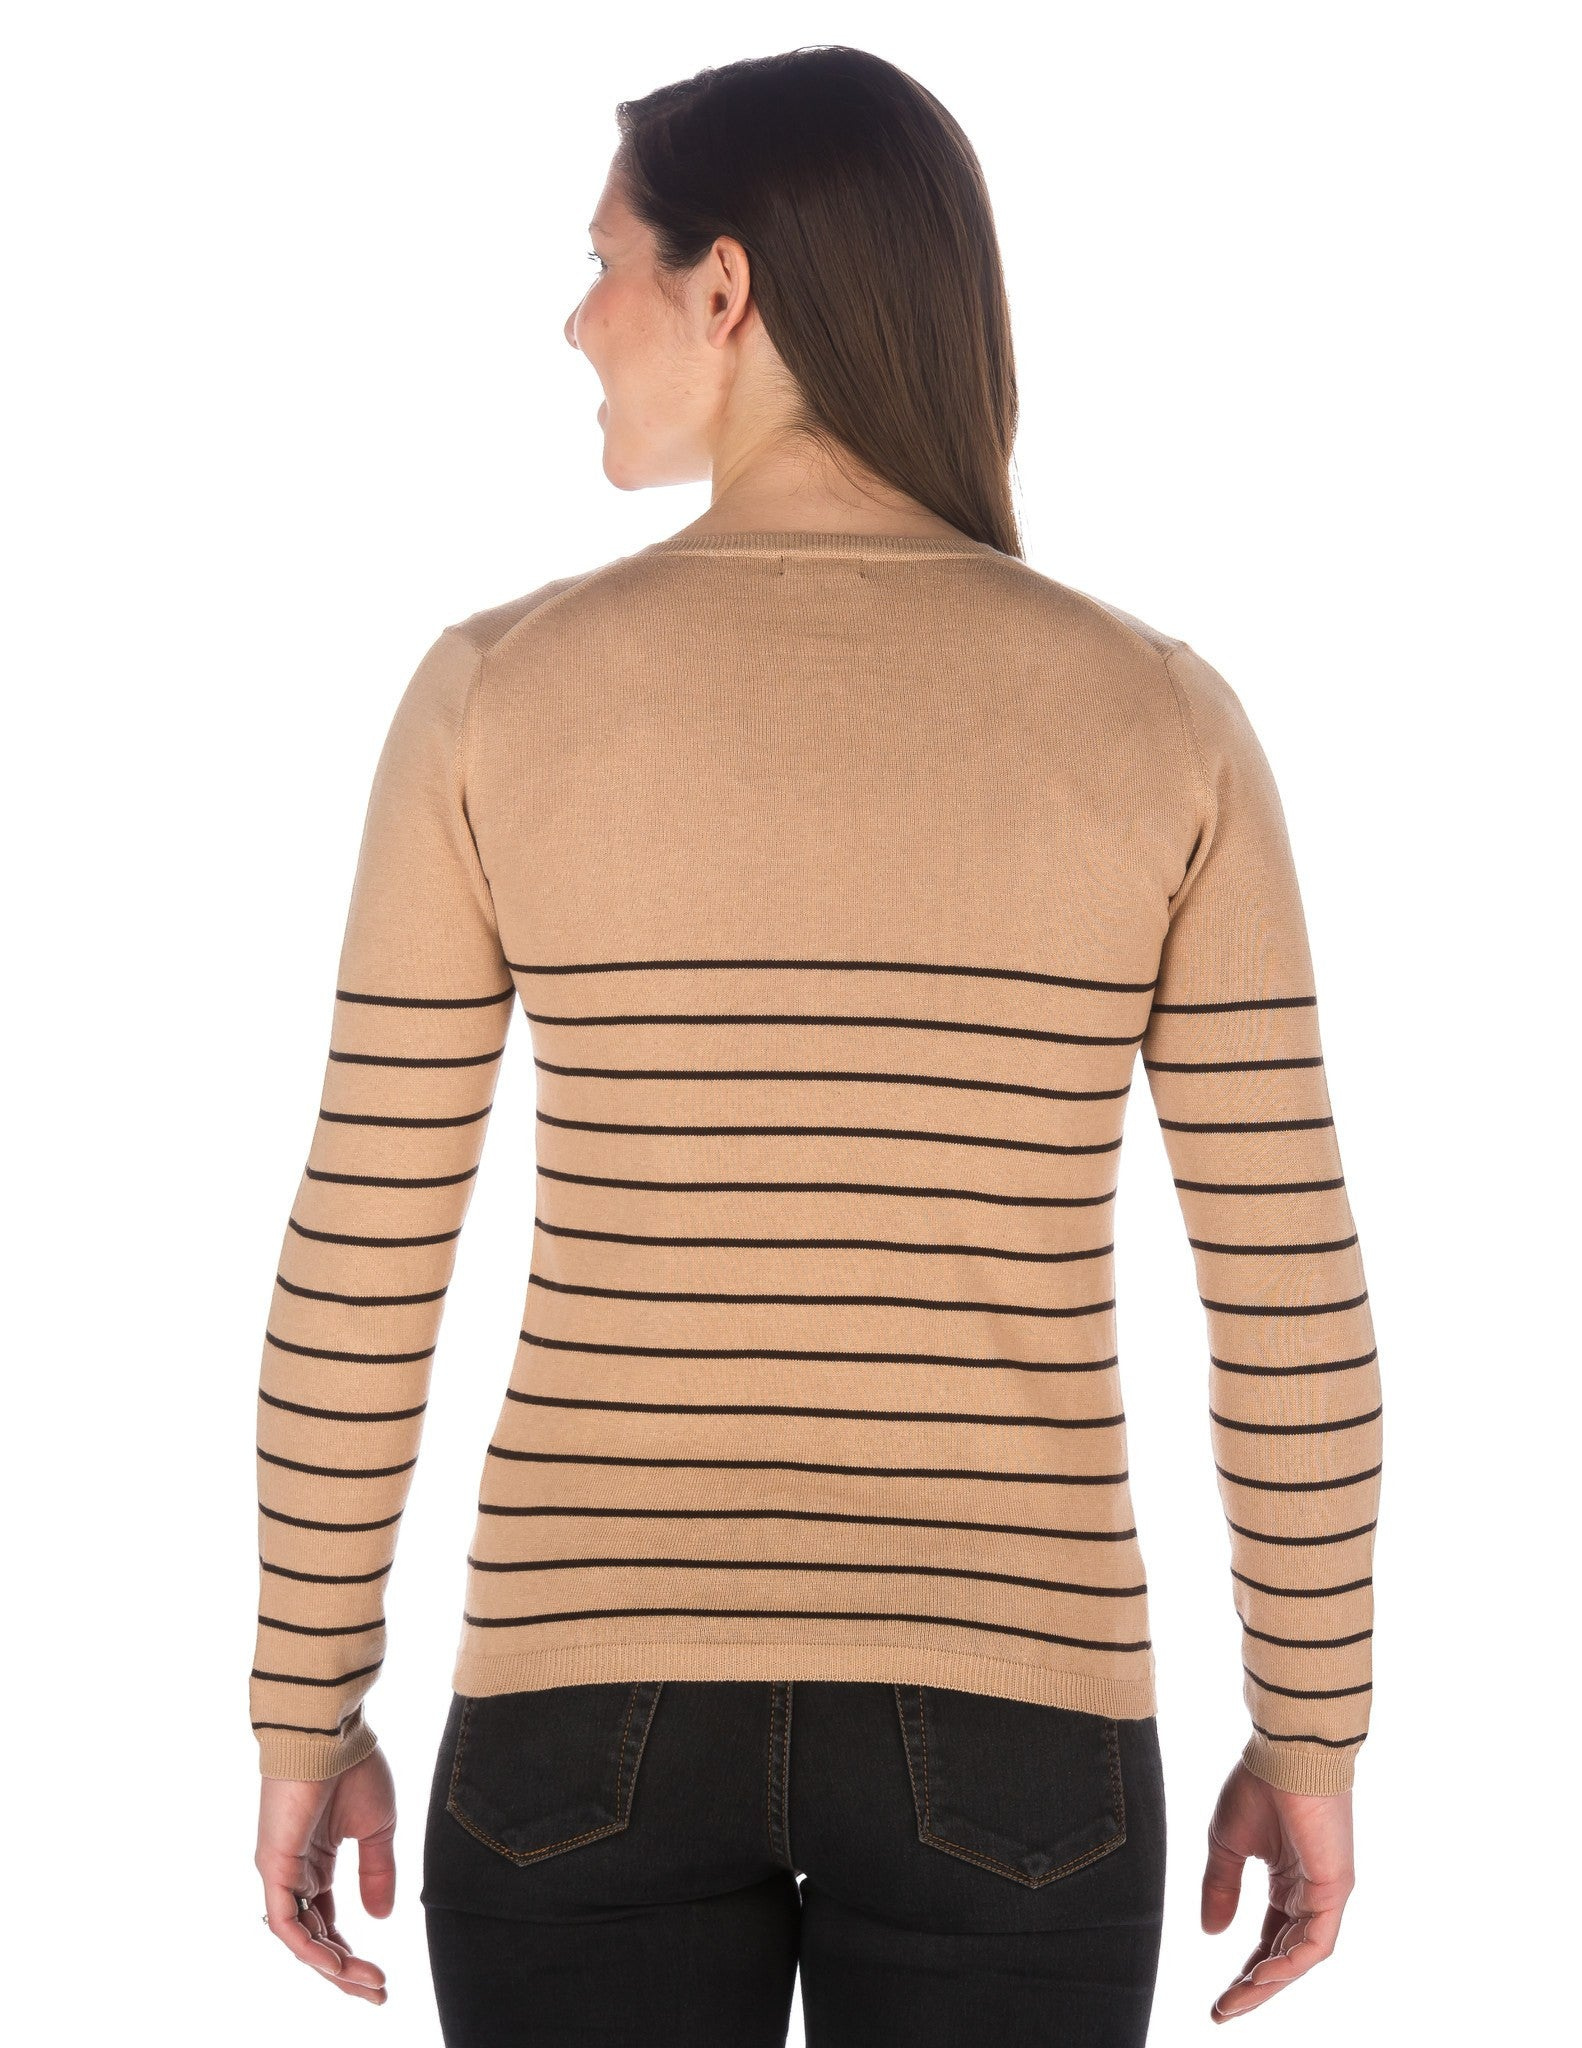 Stripes Beige-Coffee